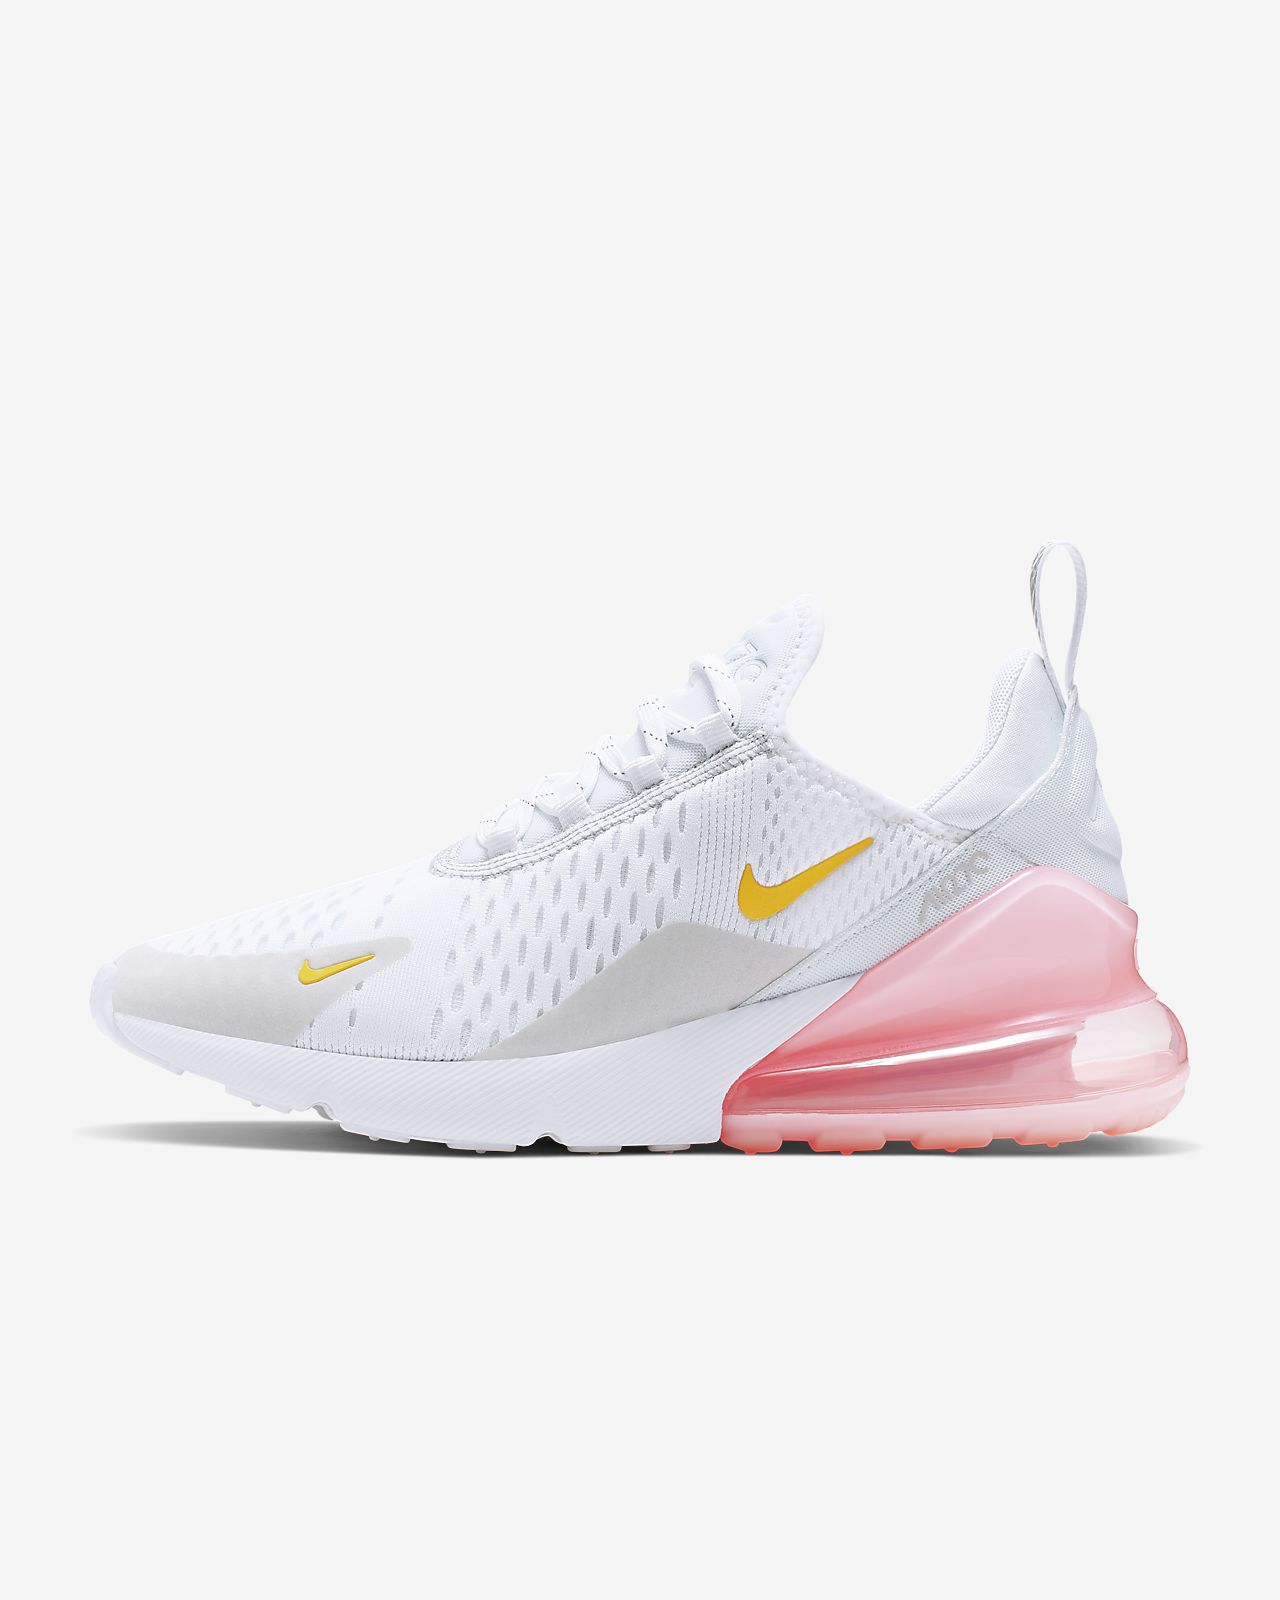 differently new arrival the cheapest Nike Air Max 270 Women's Shoe